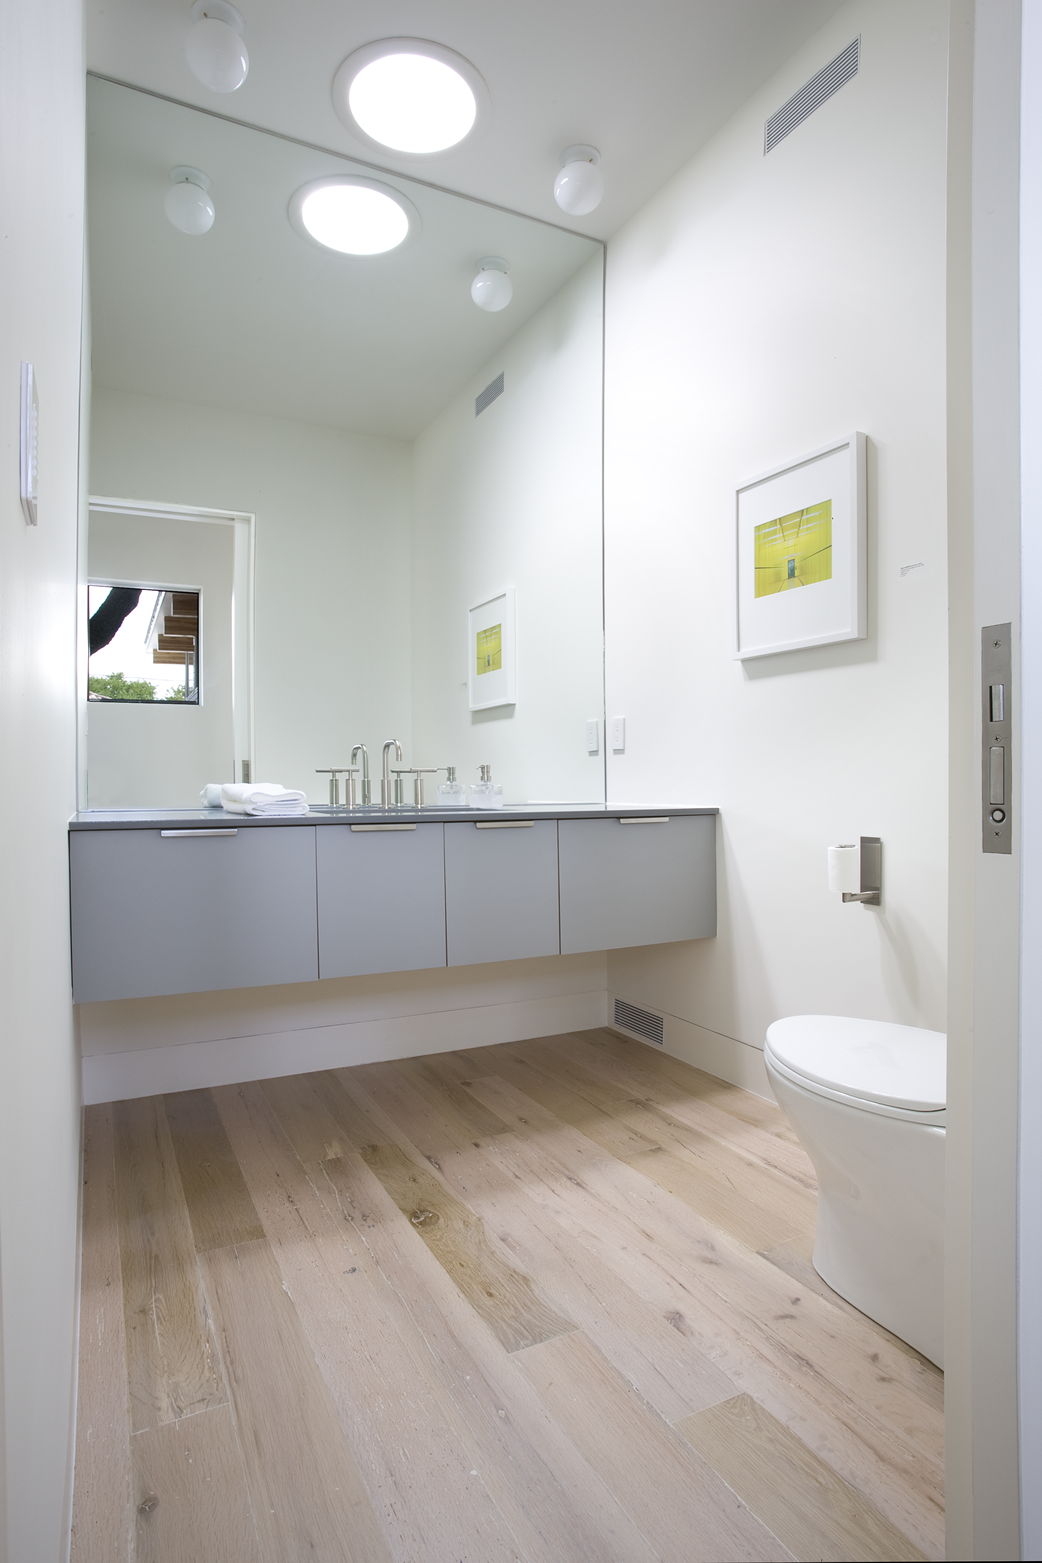 Reclaimed White Oak Hardwood Flooring Bathroom Newlifehardwoods Com